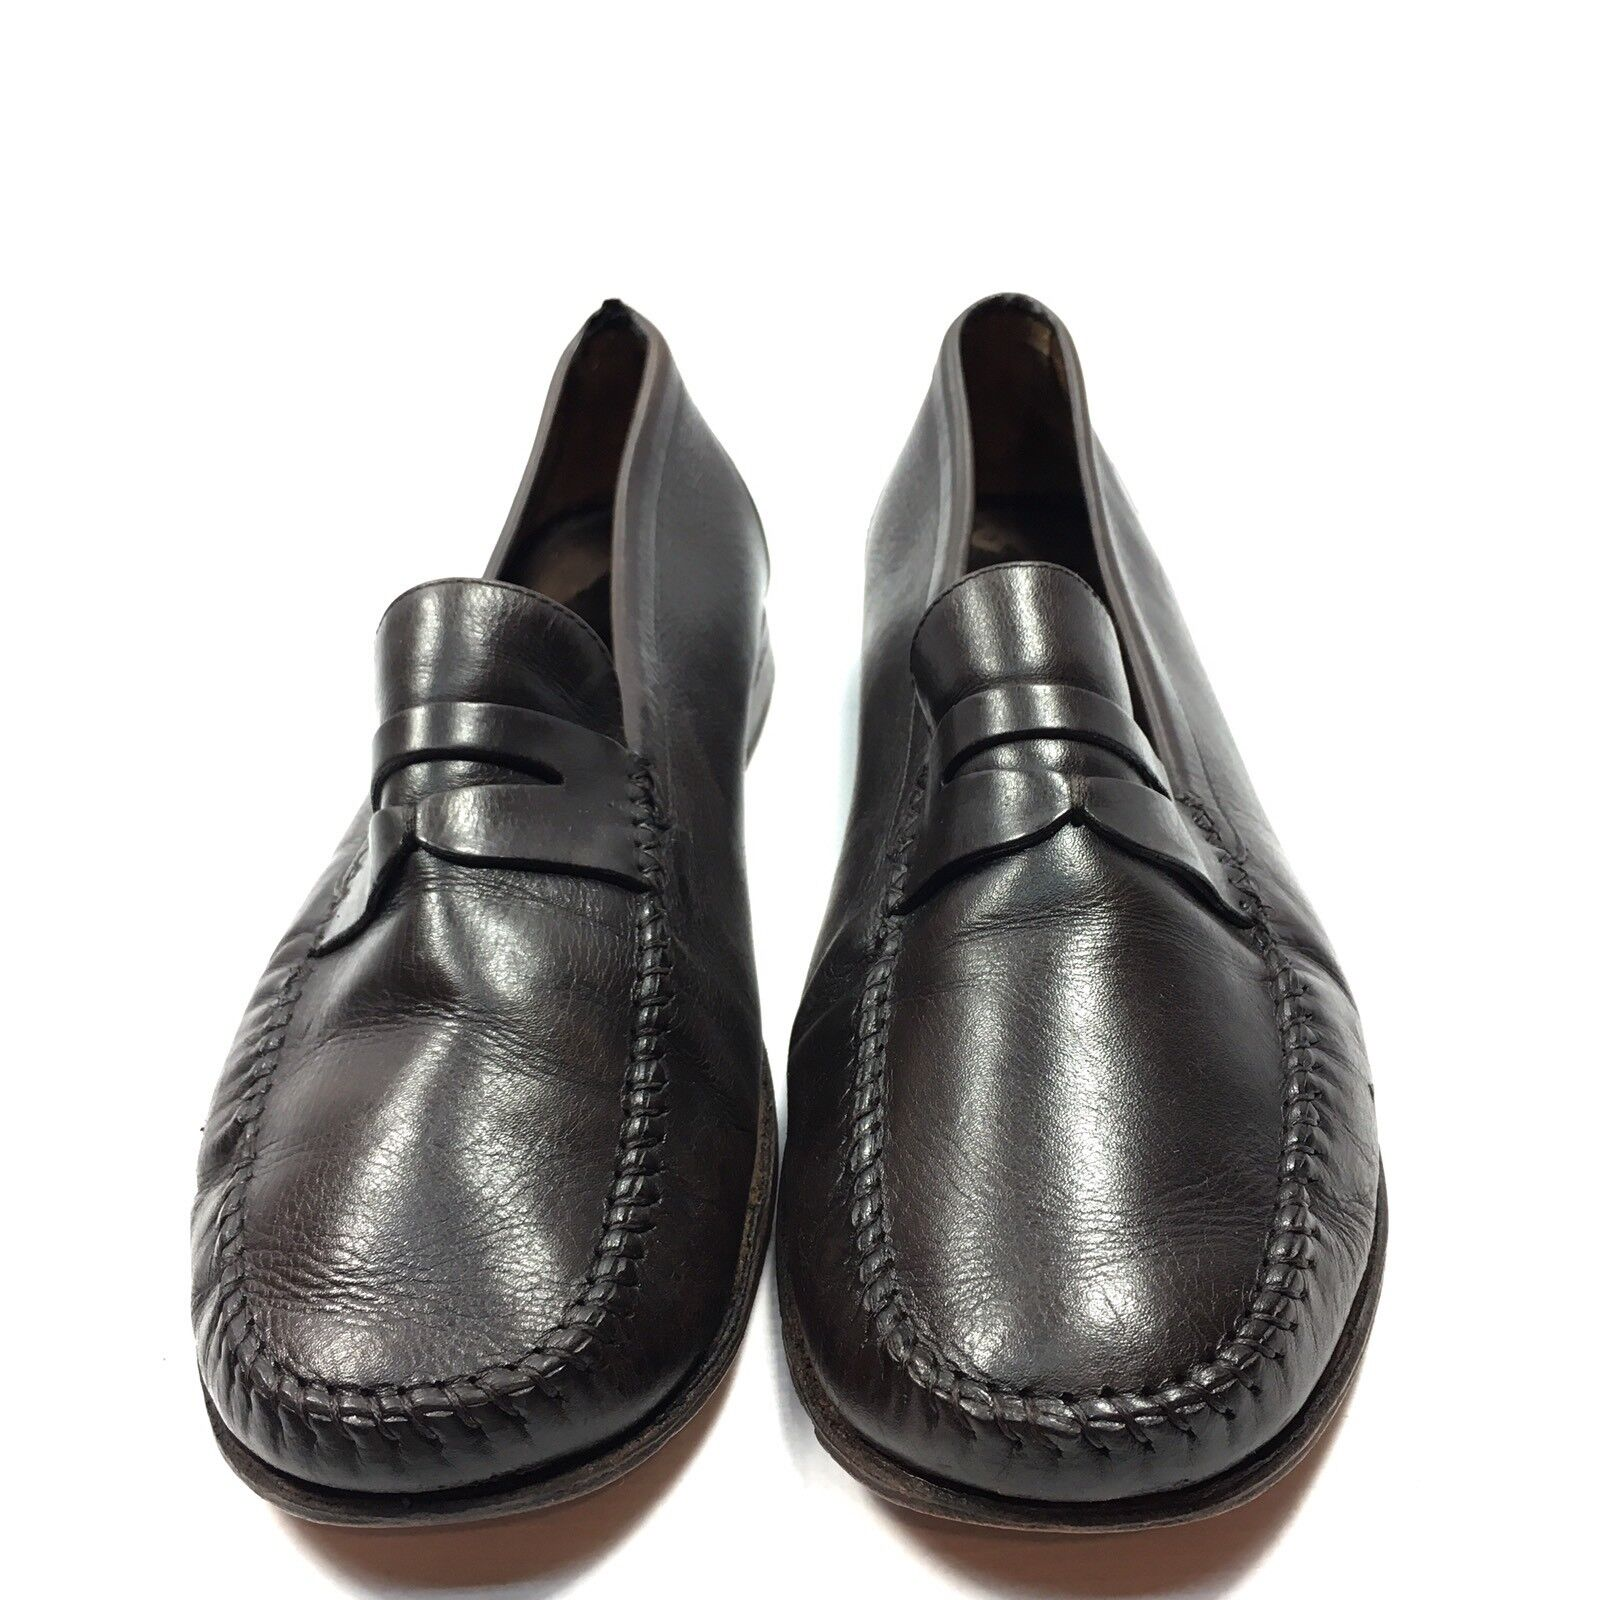 3e36315eeff Cole Haan Mens Pinch Friday Penny Loafer Woodbury Handstain 10.5 M US for  sale online